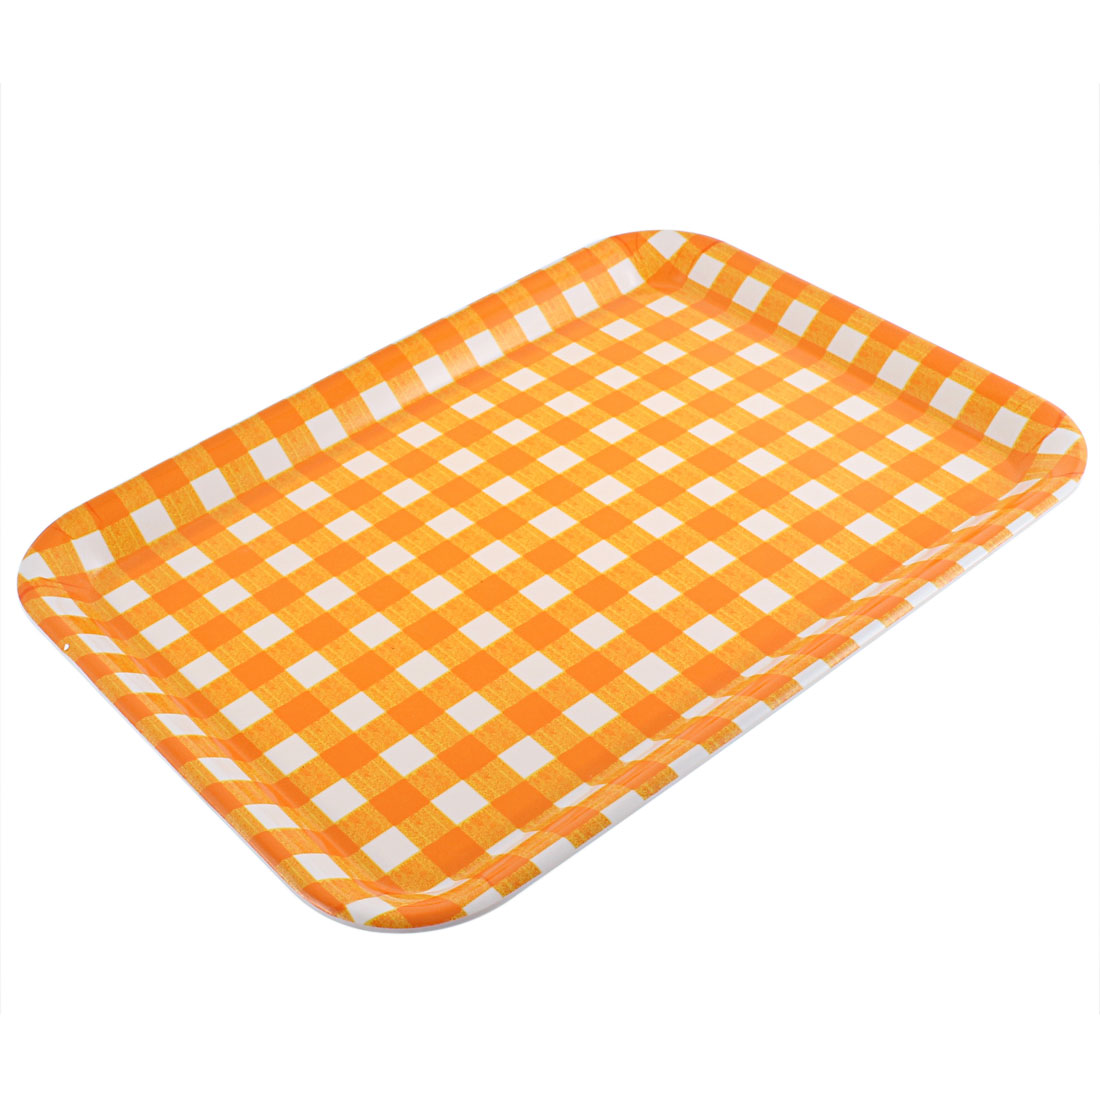 "Hotel Restaurant Plastic Rectangle Shaped Food Serving Tray 17"" Length"